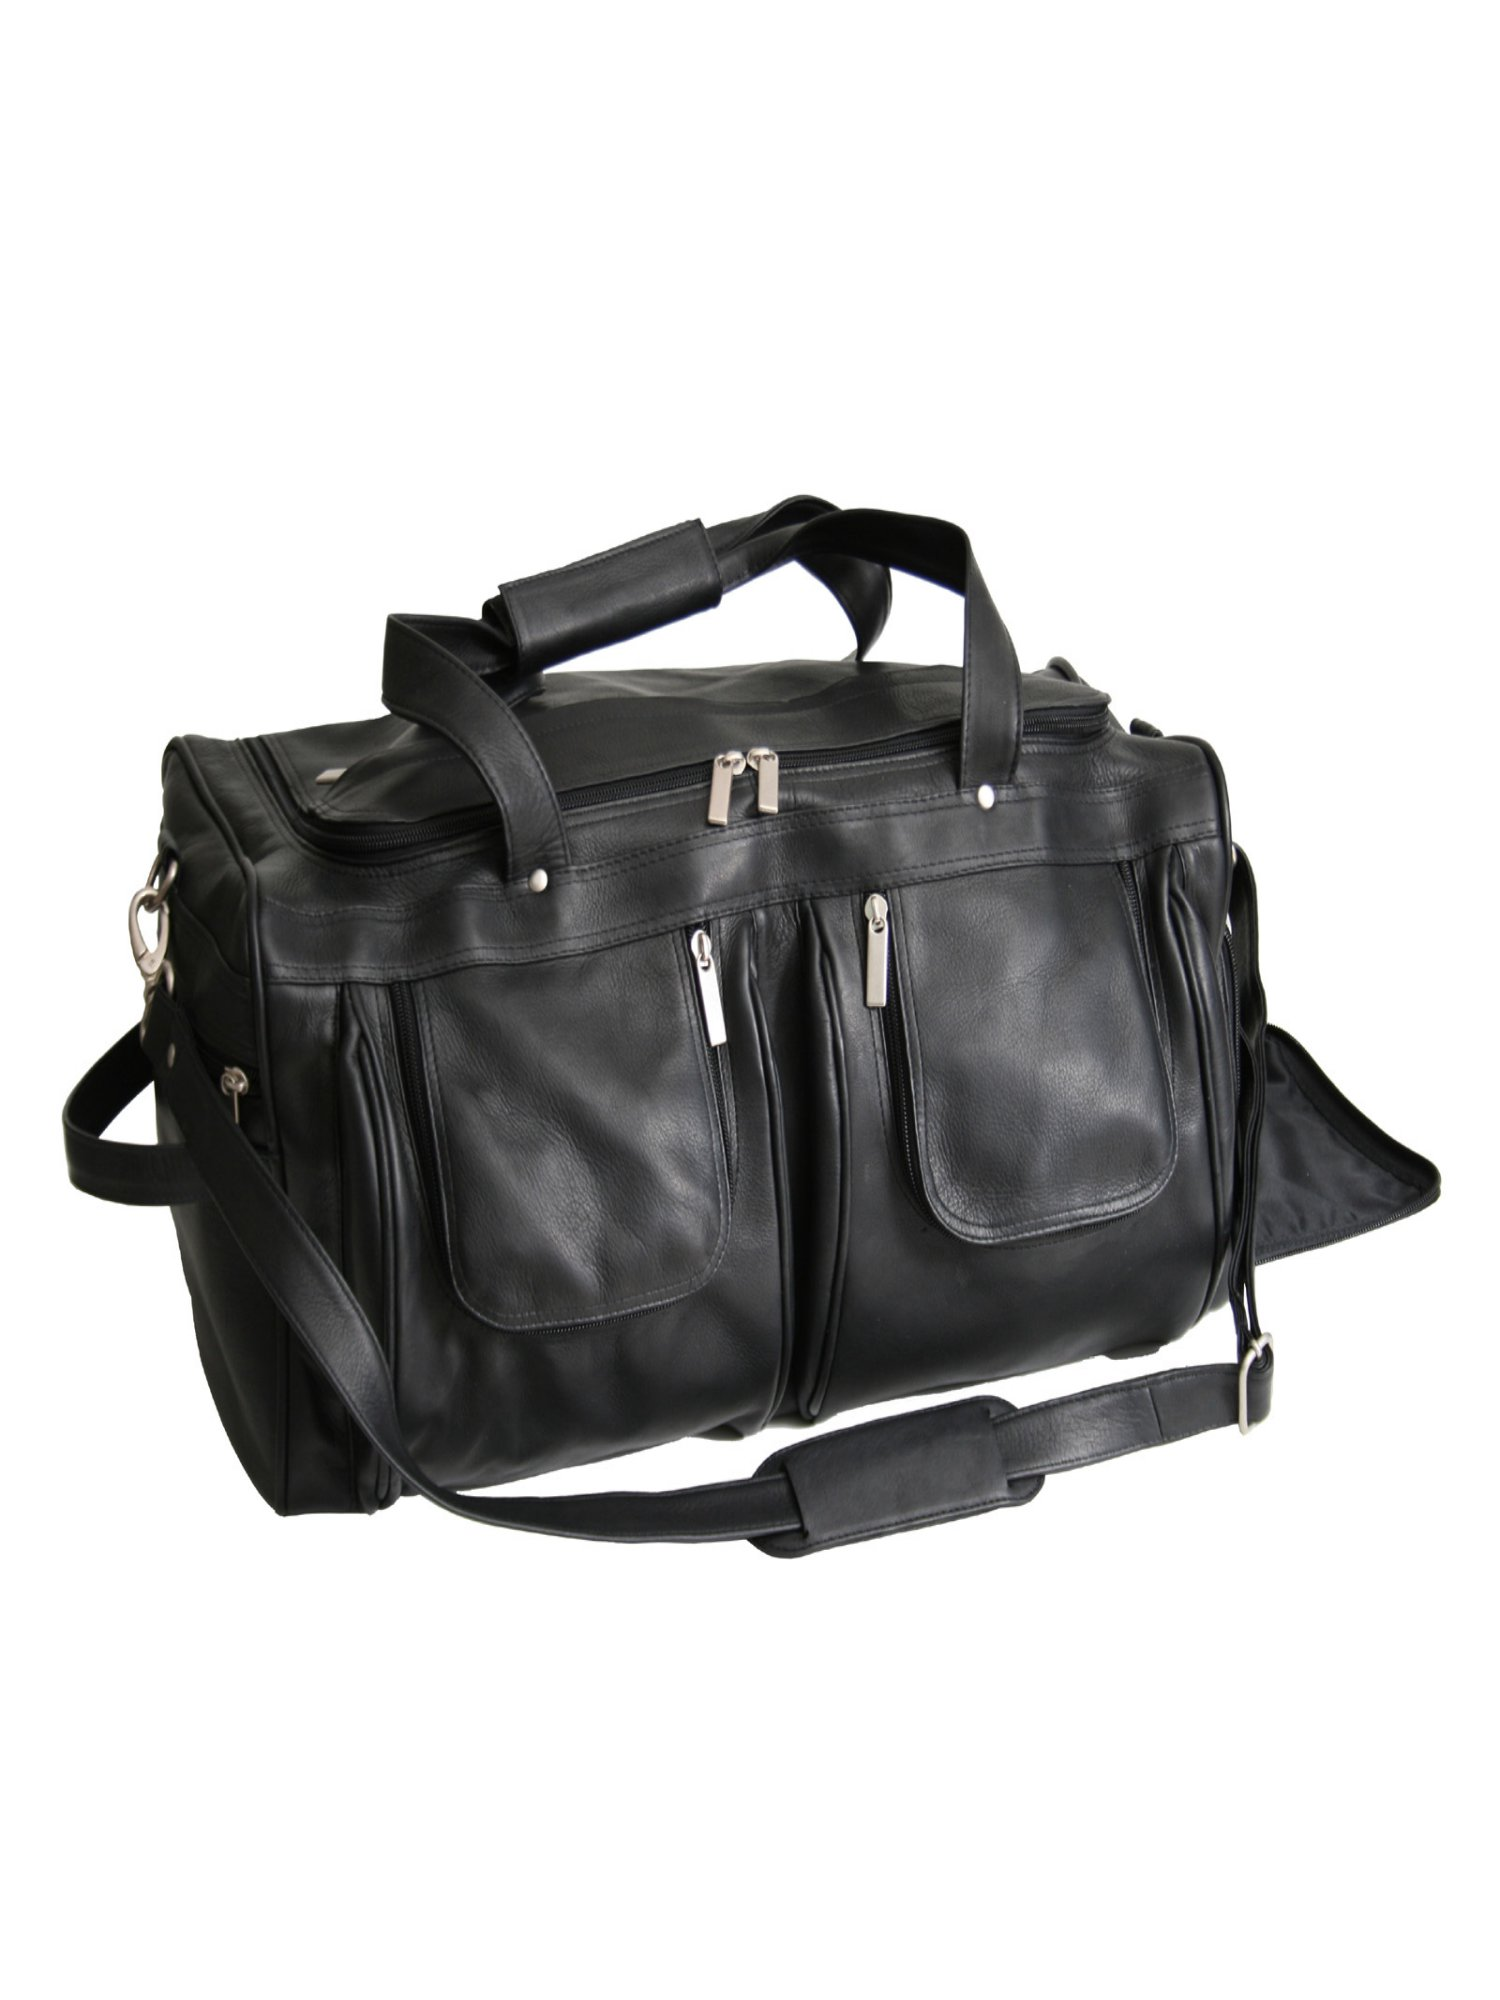 Royce Leather Colombian Vaquetta Leather Sports Duffel Travel Bag by Royce Leather